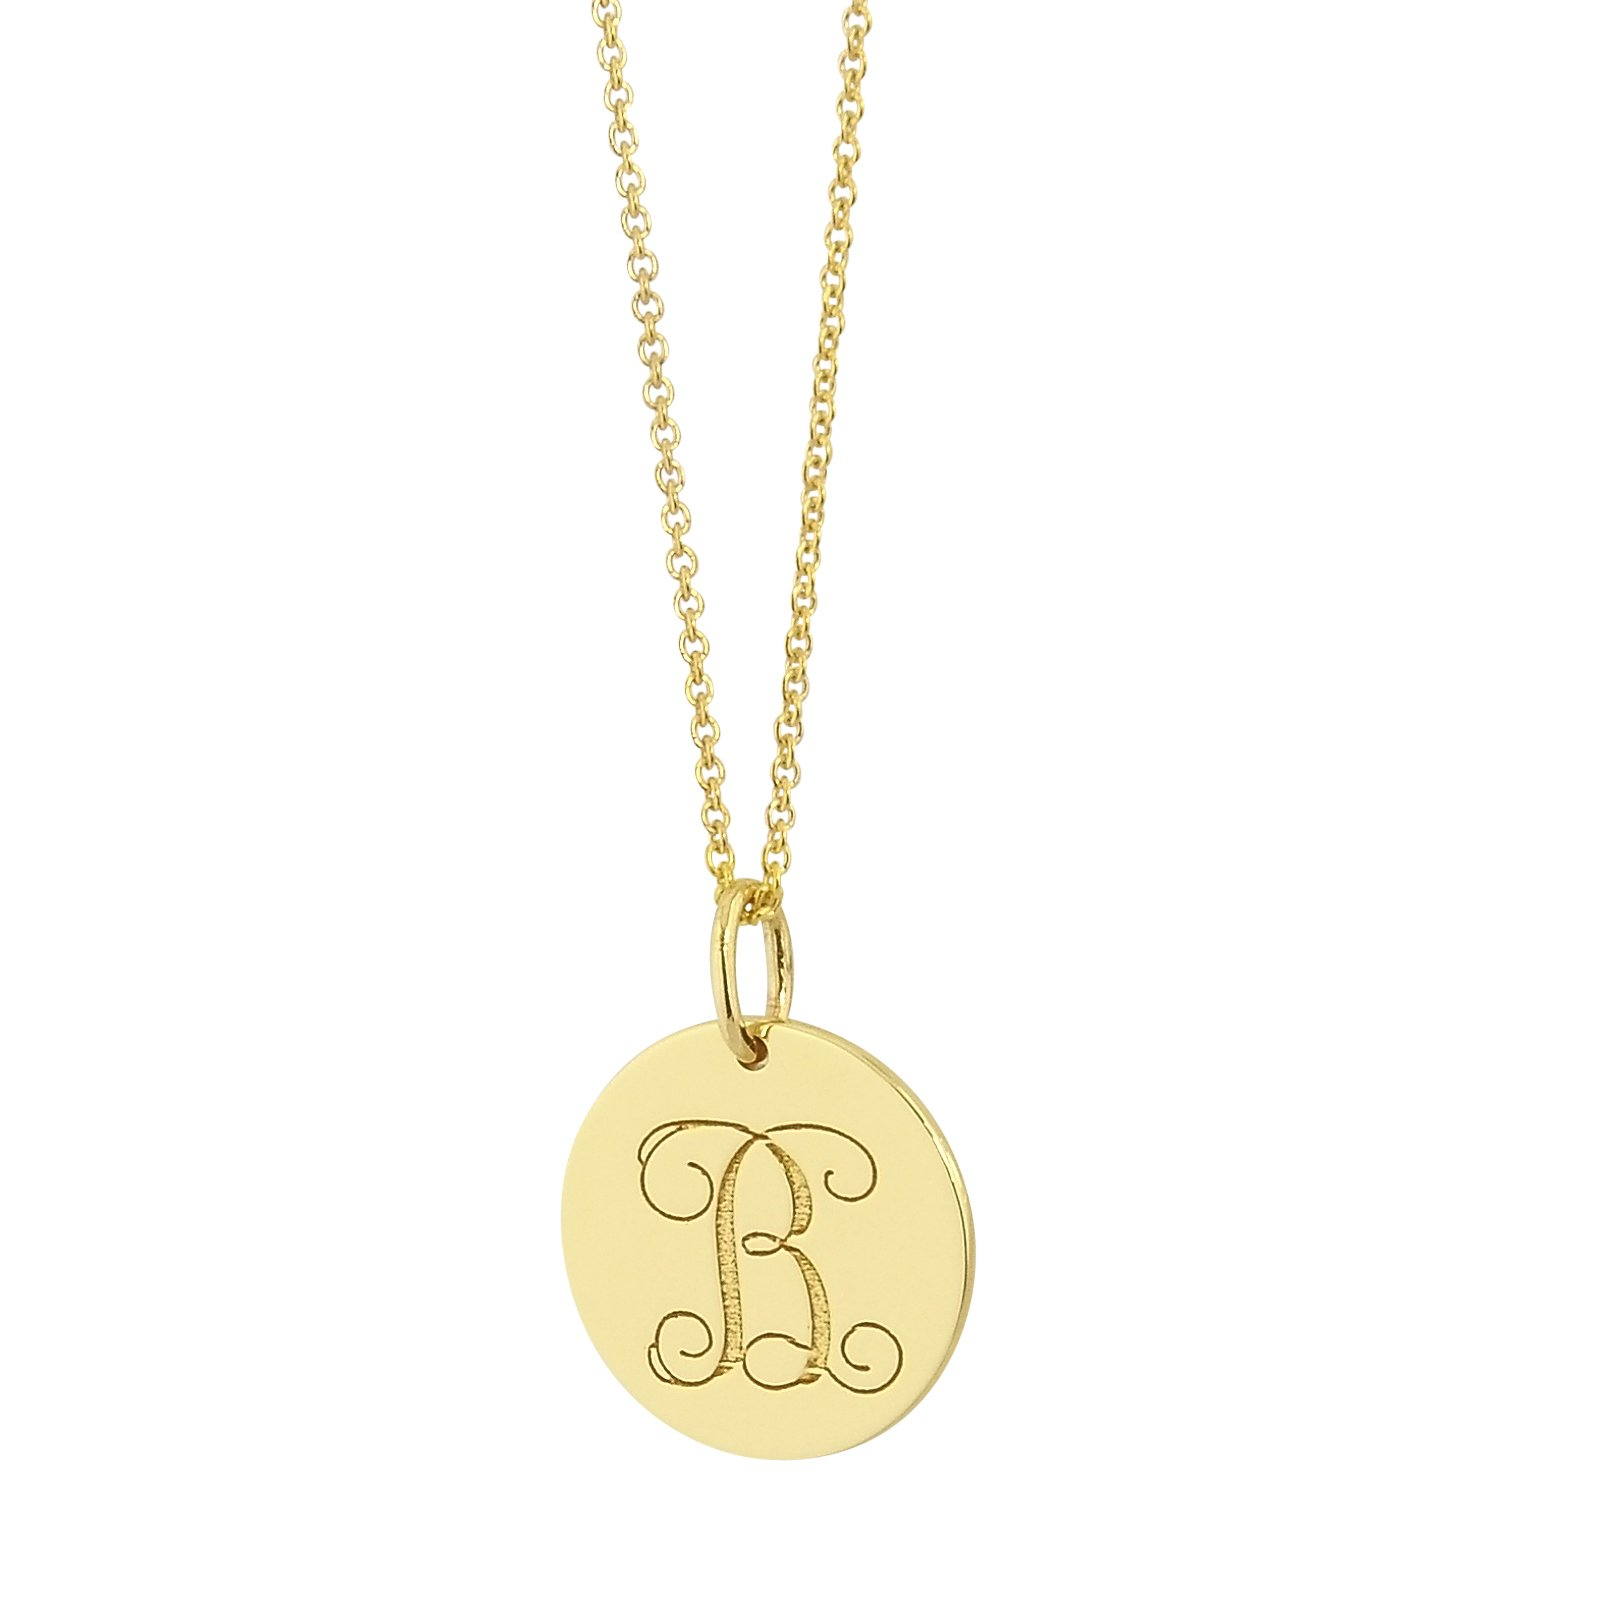 Dainty small 1/2'' Monogram Initial Disc Pendant Solid 14K Yellow Gold Laser Engraved GC05 (18)